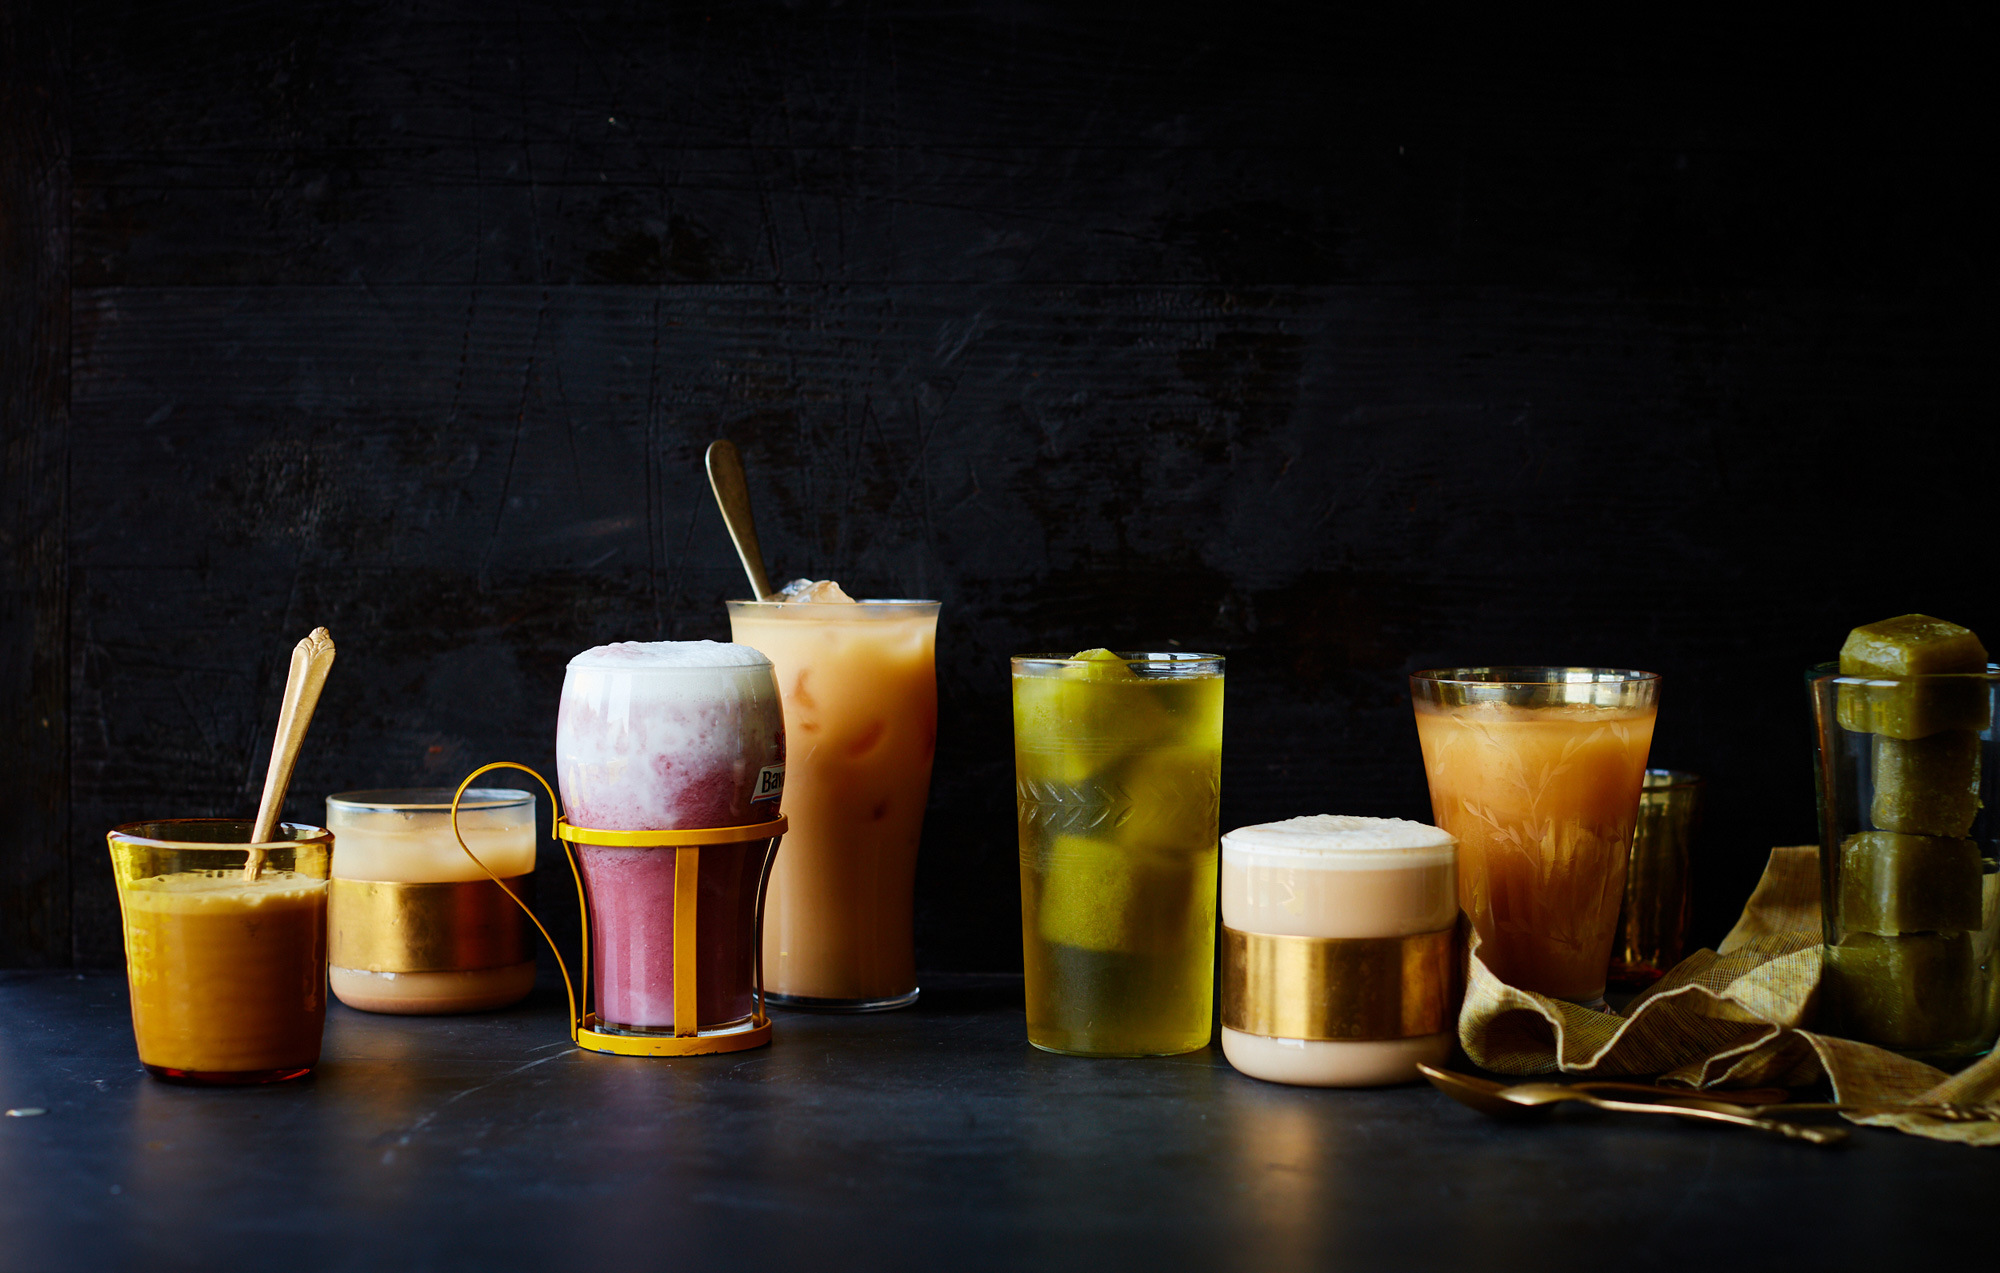 88_Ice_Cream_Latte_Rose_Latte_Horchata_Green_Iced_Tea_J_Miller_2558